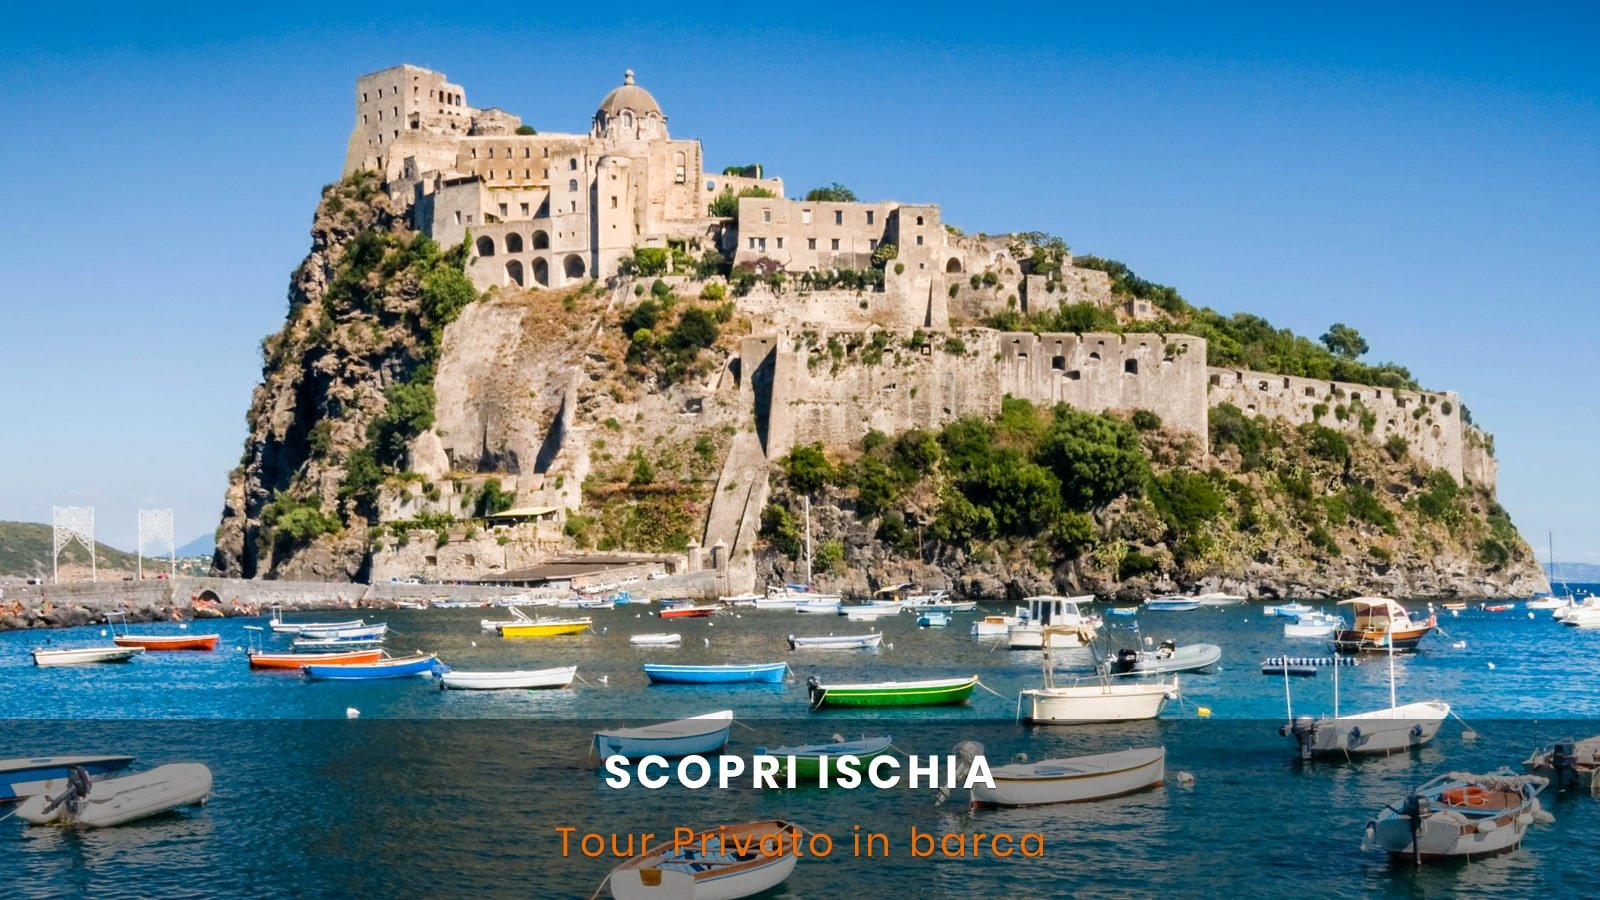 Tour in barca ad Ischia